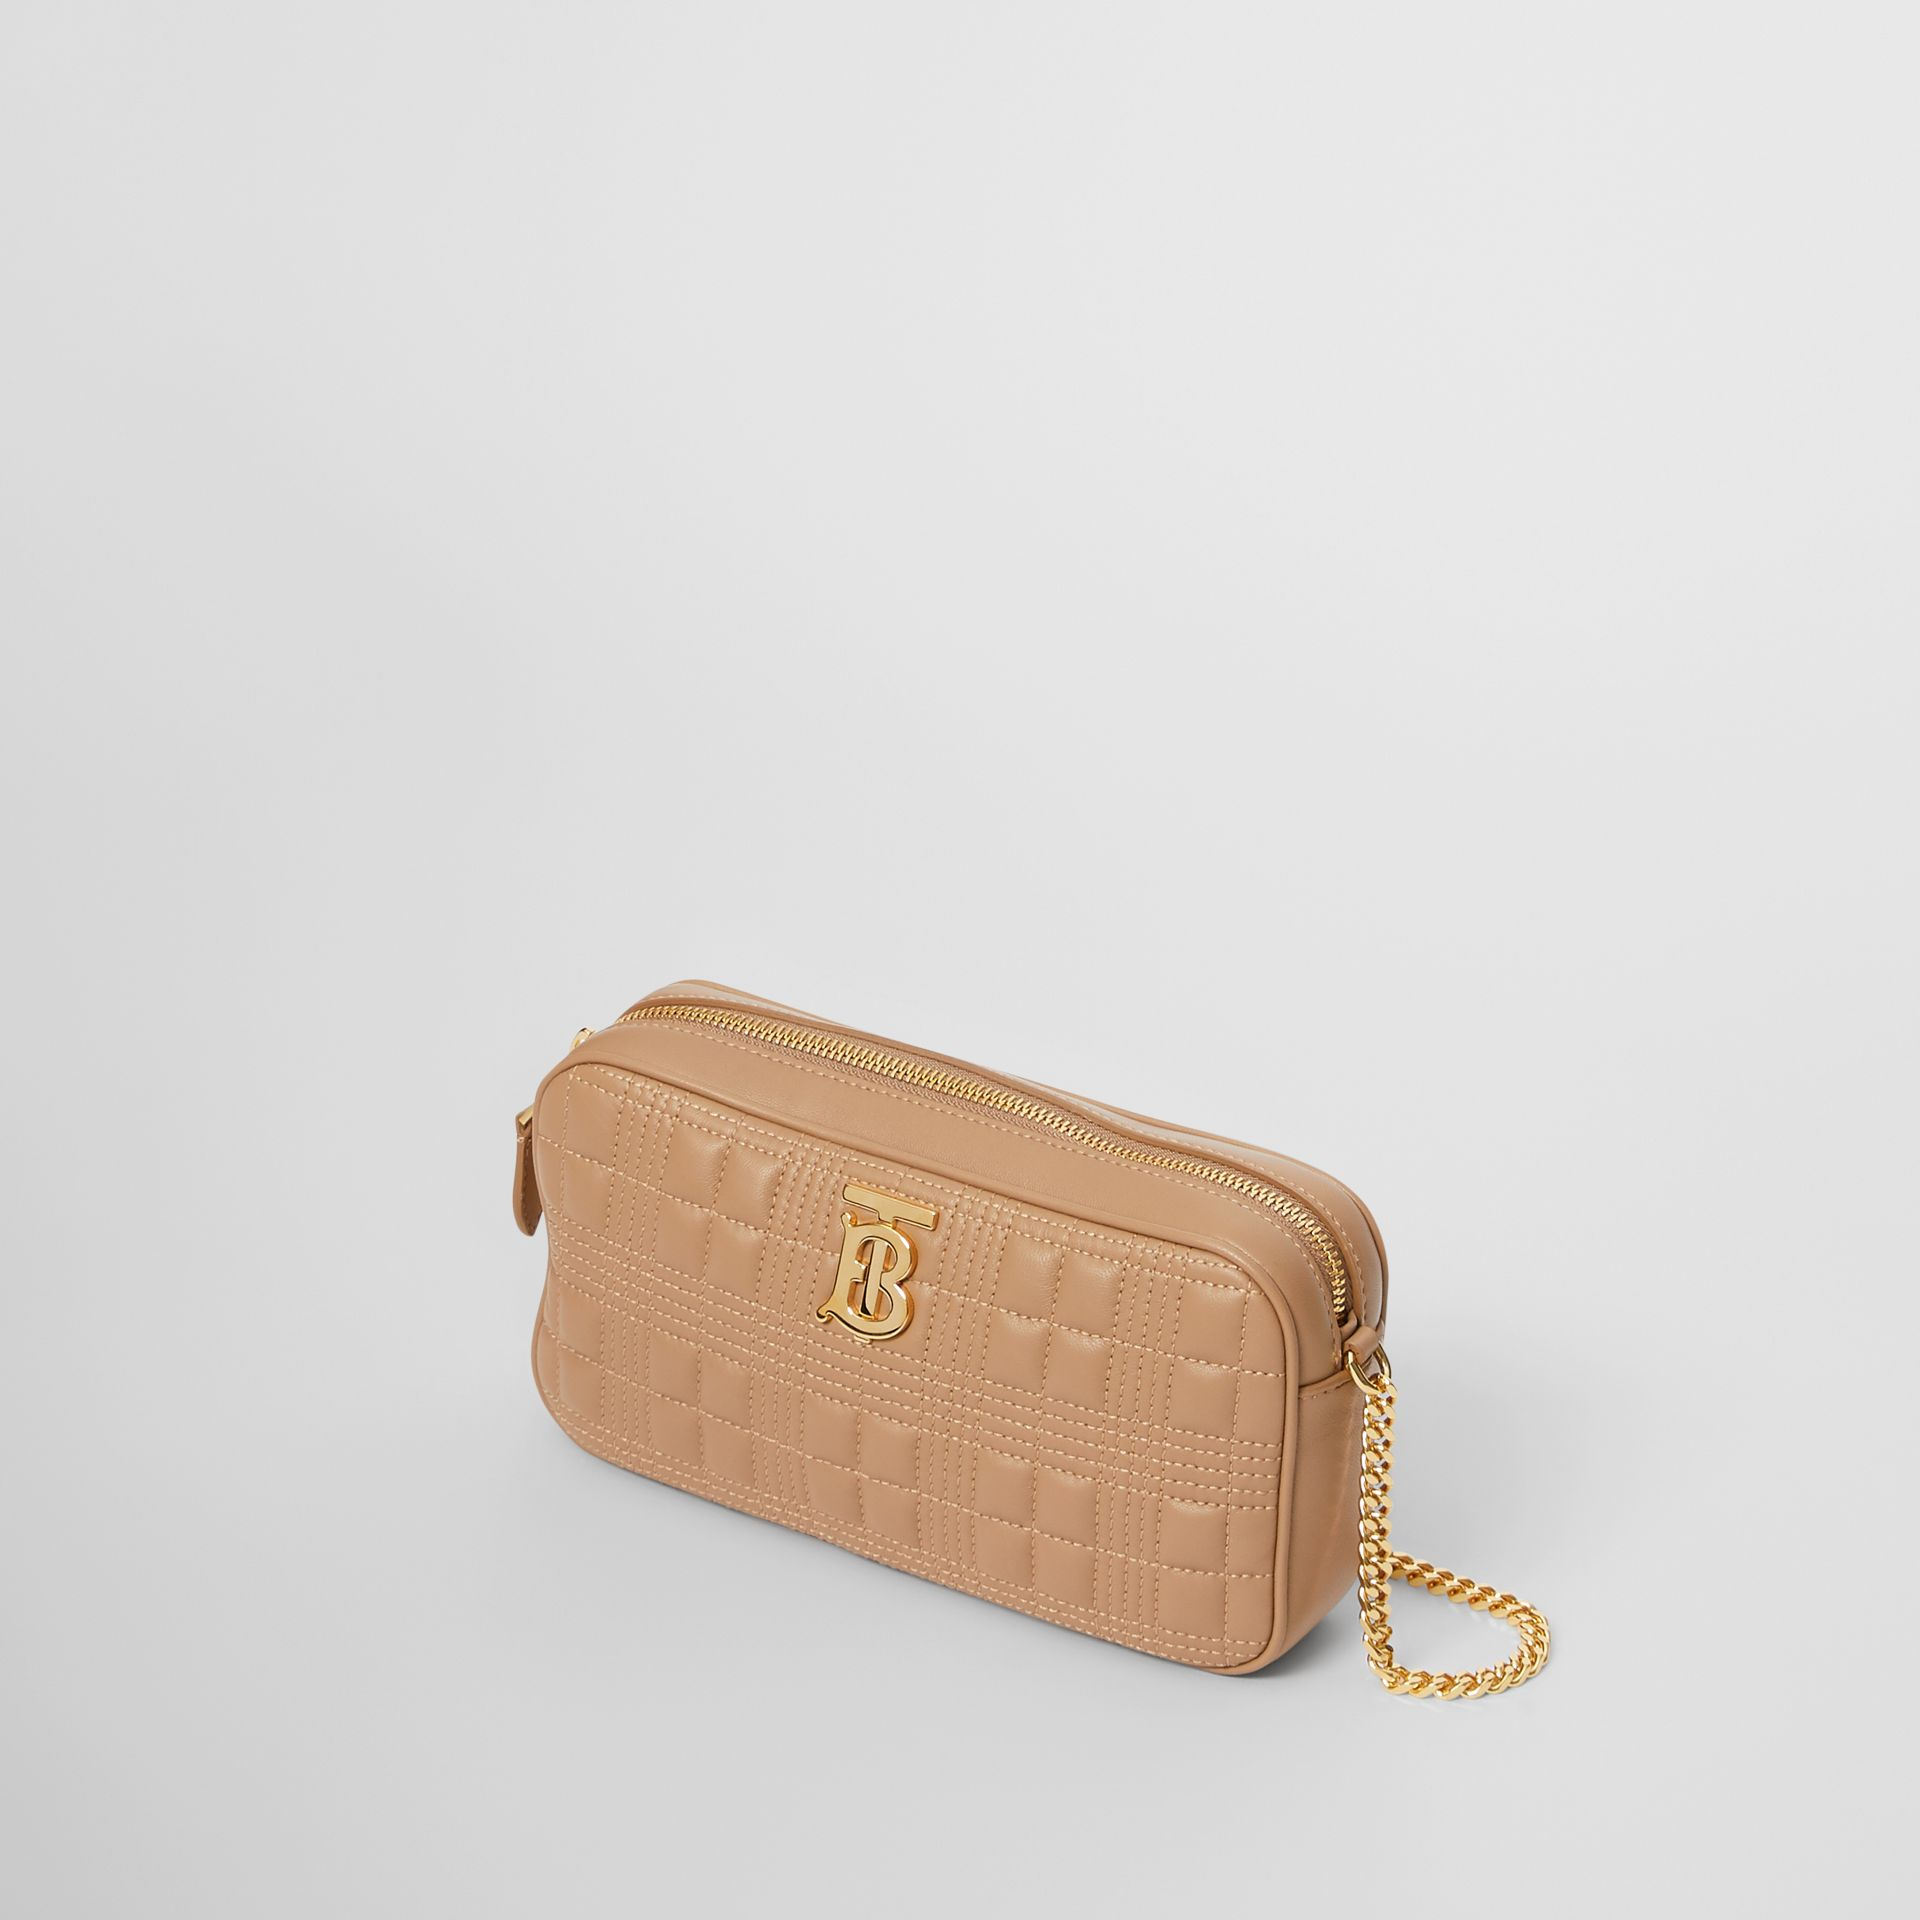 Quilted Check Lambskin Camera Bag in Camel - Women | Burberry - gallery image 3